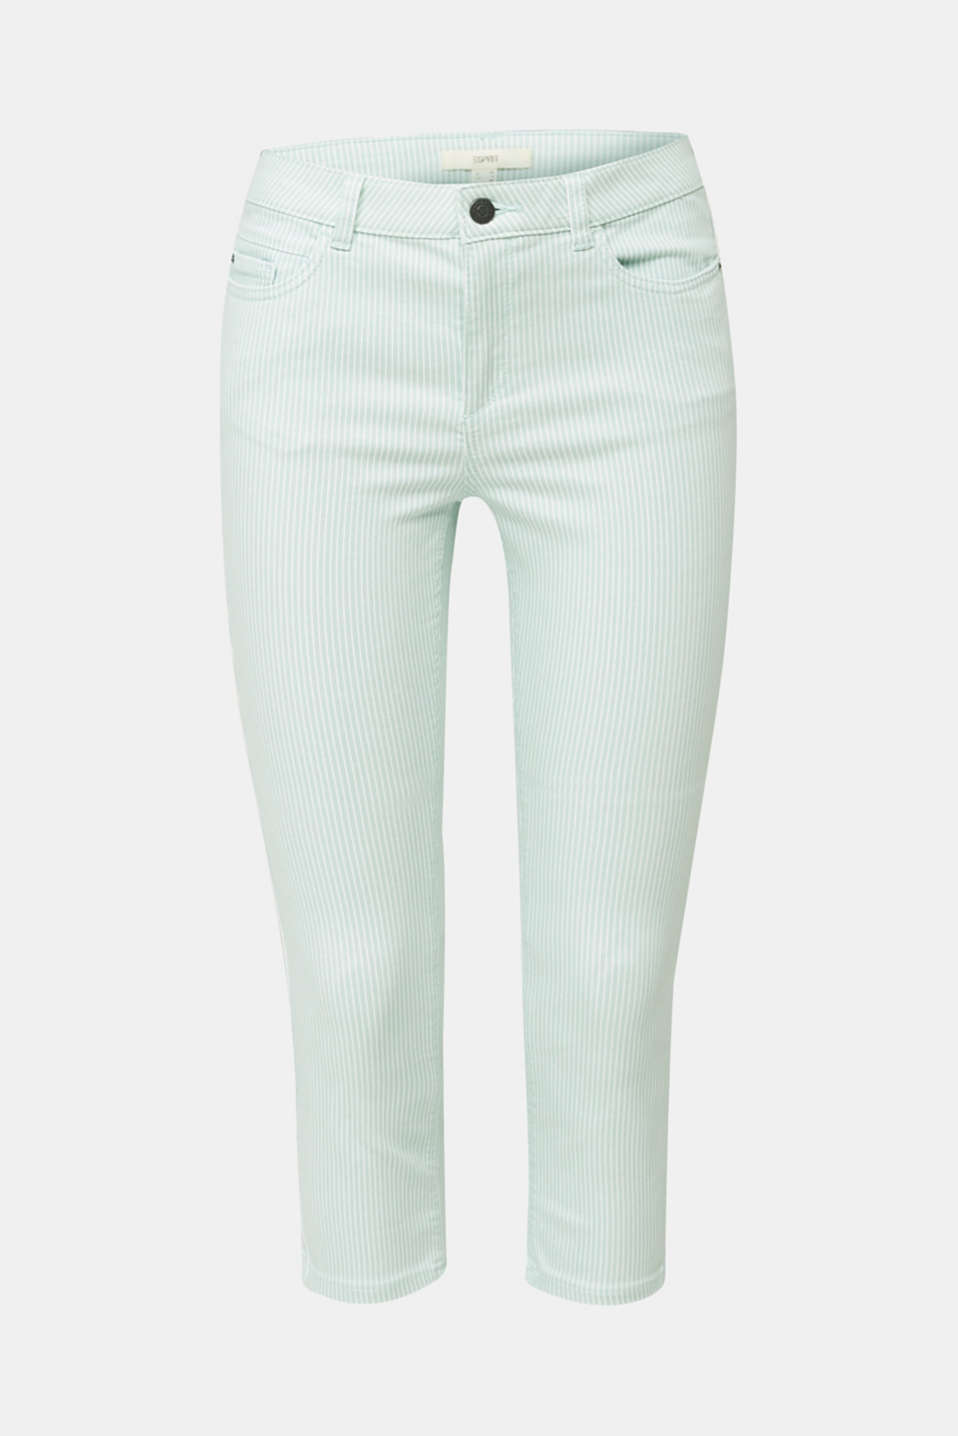 REPREVE striped Trousers, recycled, LIGHT AQUA GREEN, detail image number 7